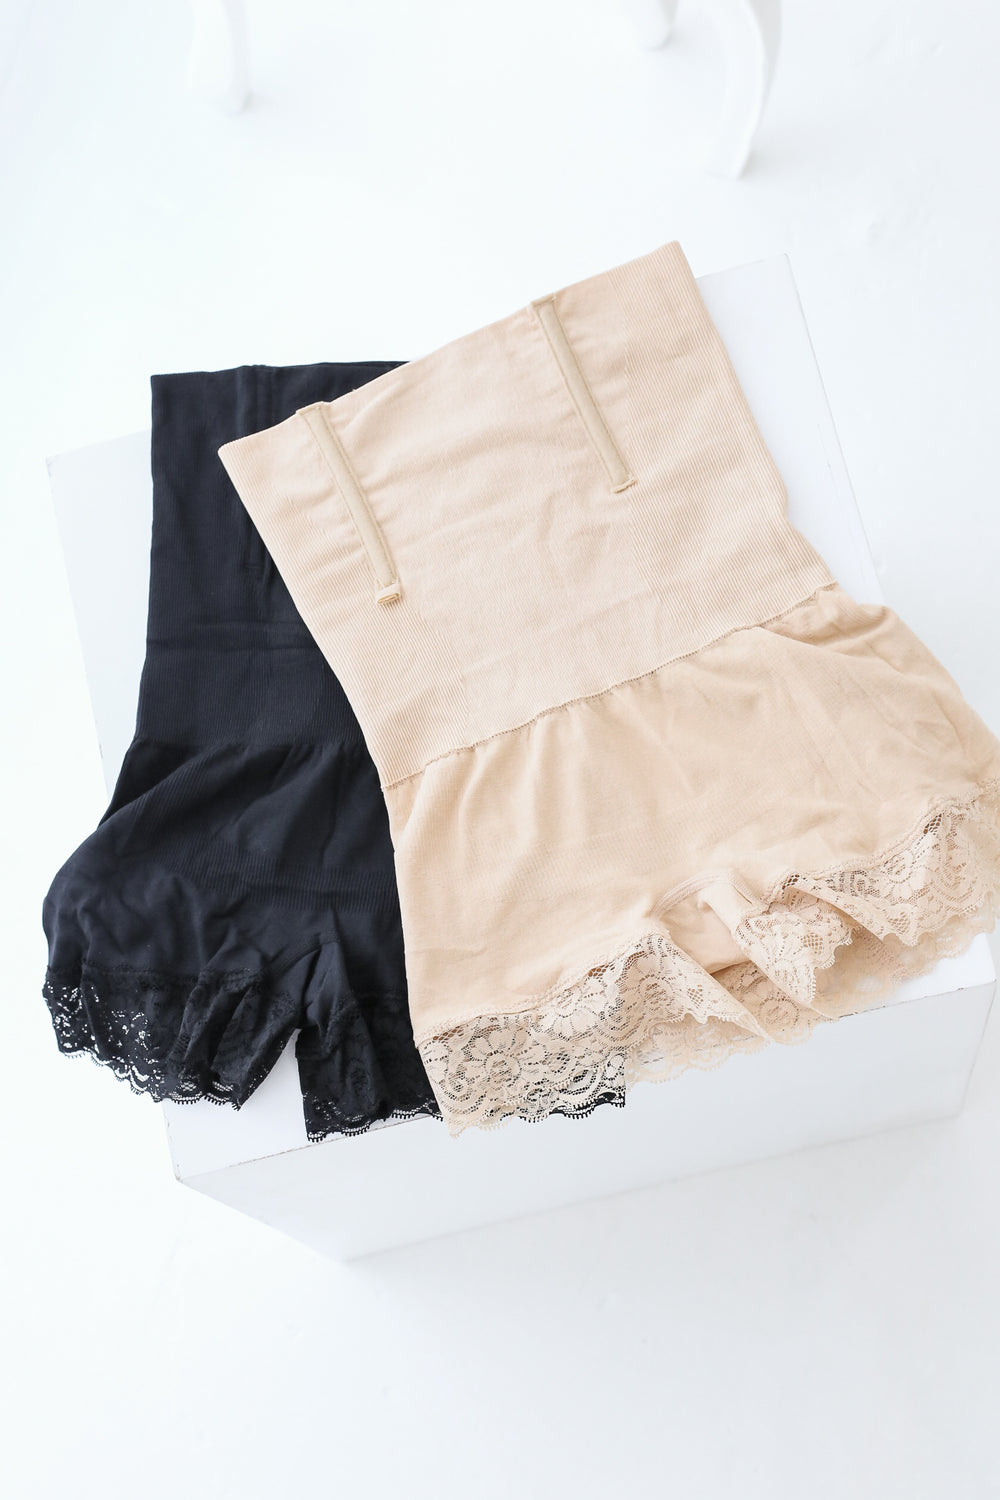 *RESTOCKED* COTTON LACE TUMMY + HIP TUCKER IN BLACK